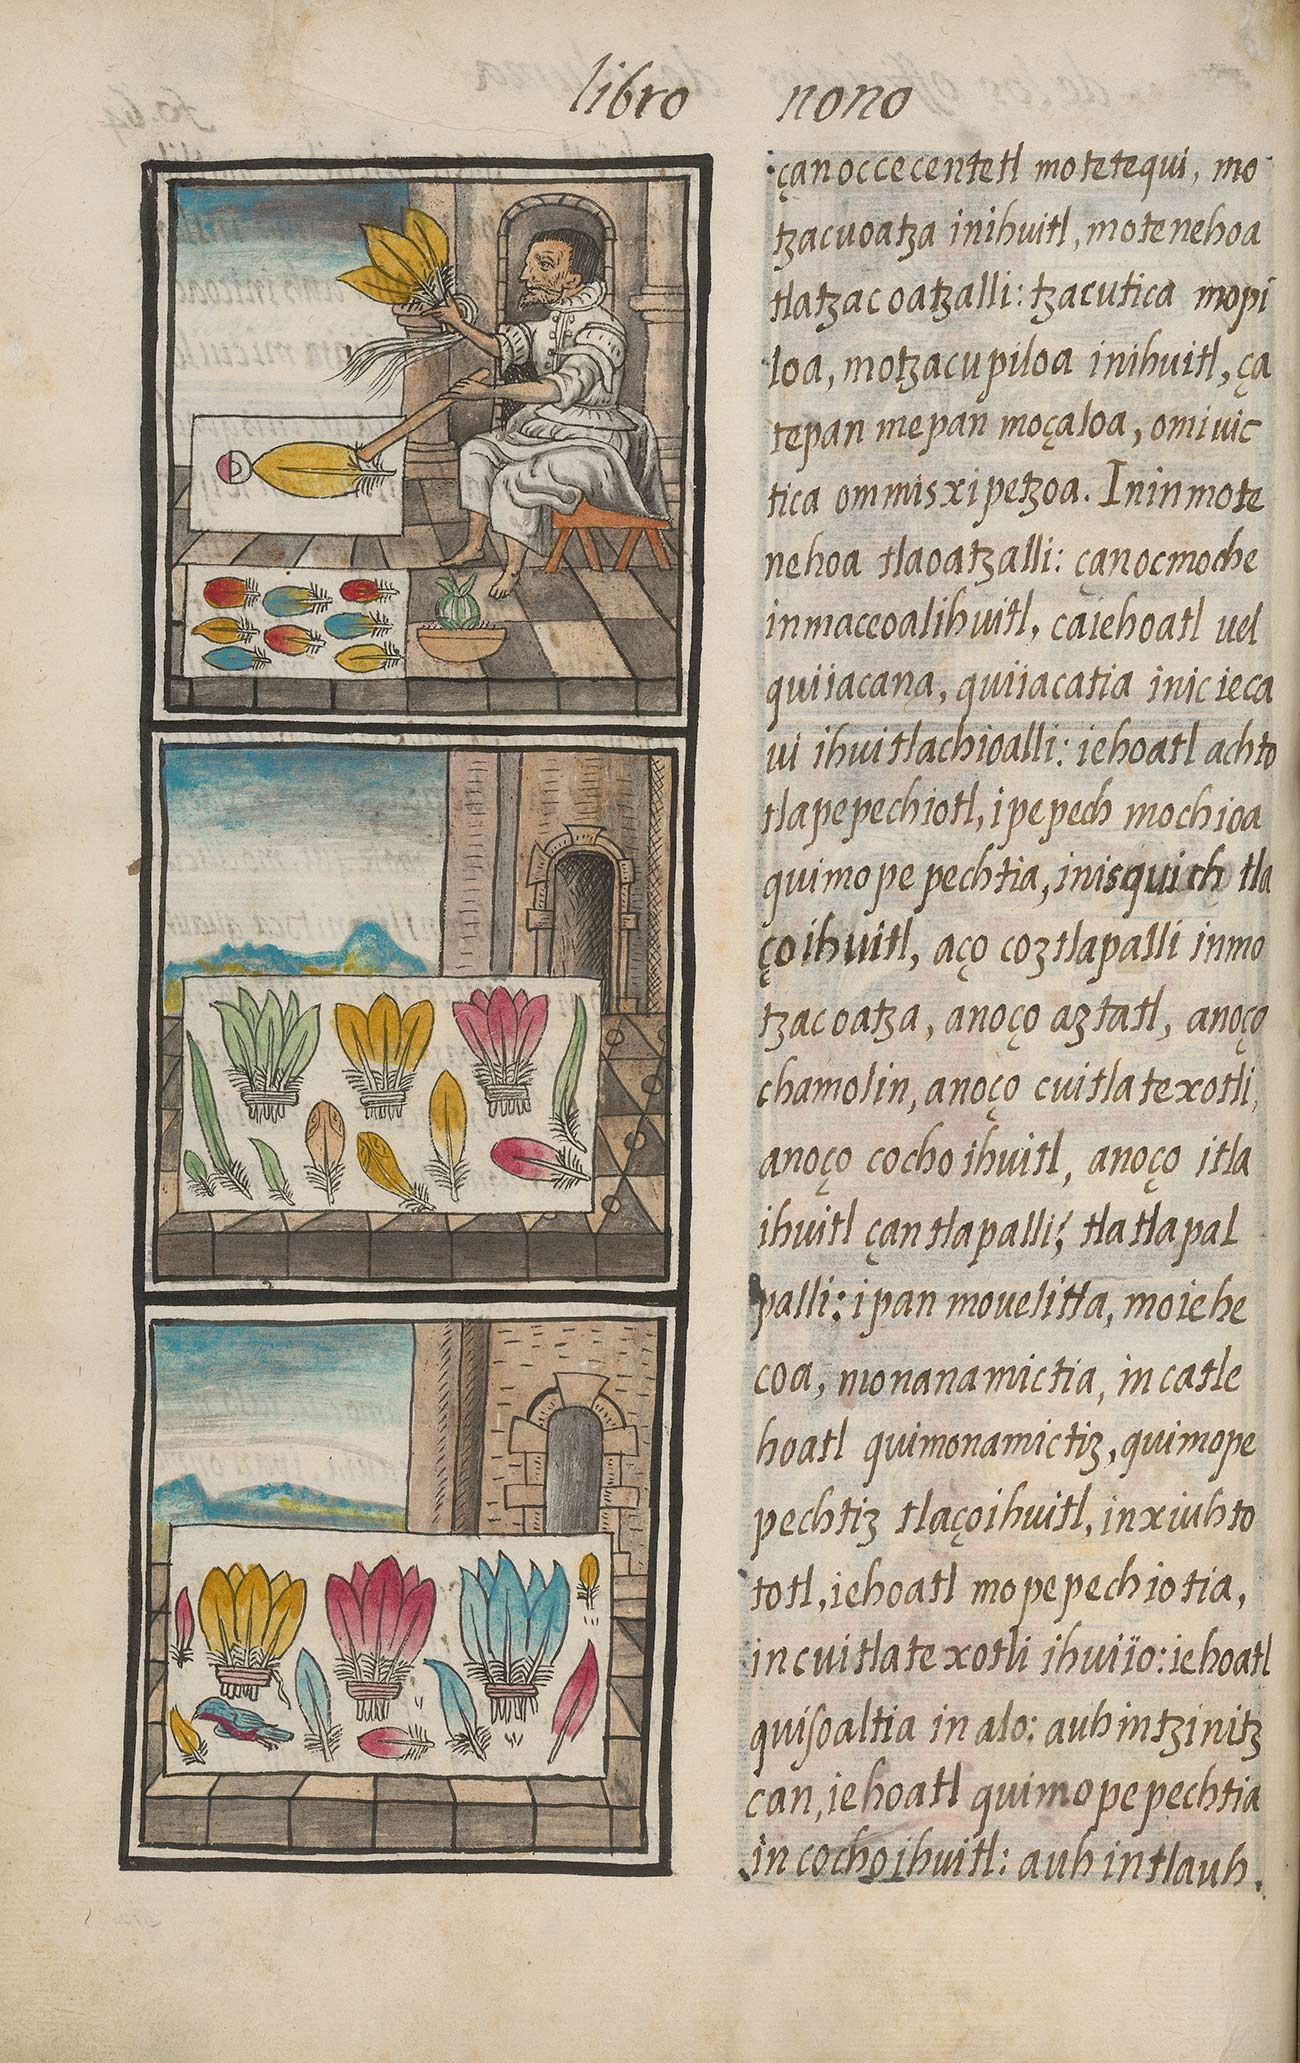 A page with text on the right, and three illustrations on the left showing a person placing feathers on a white sheet.